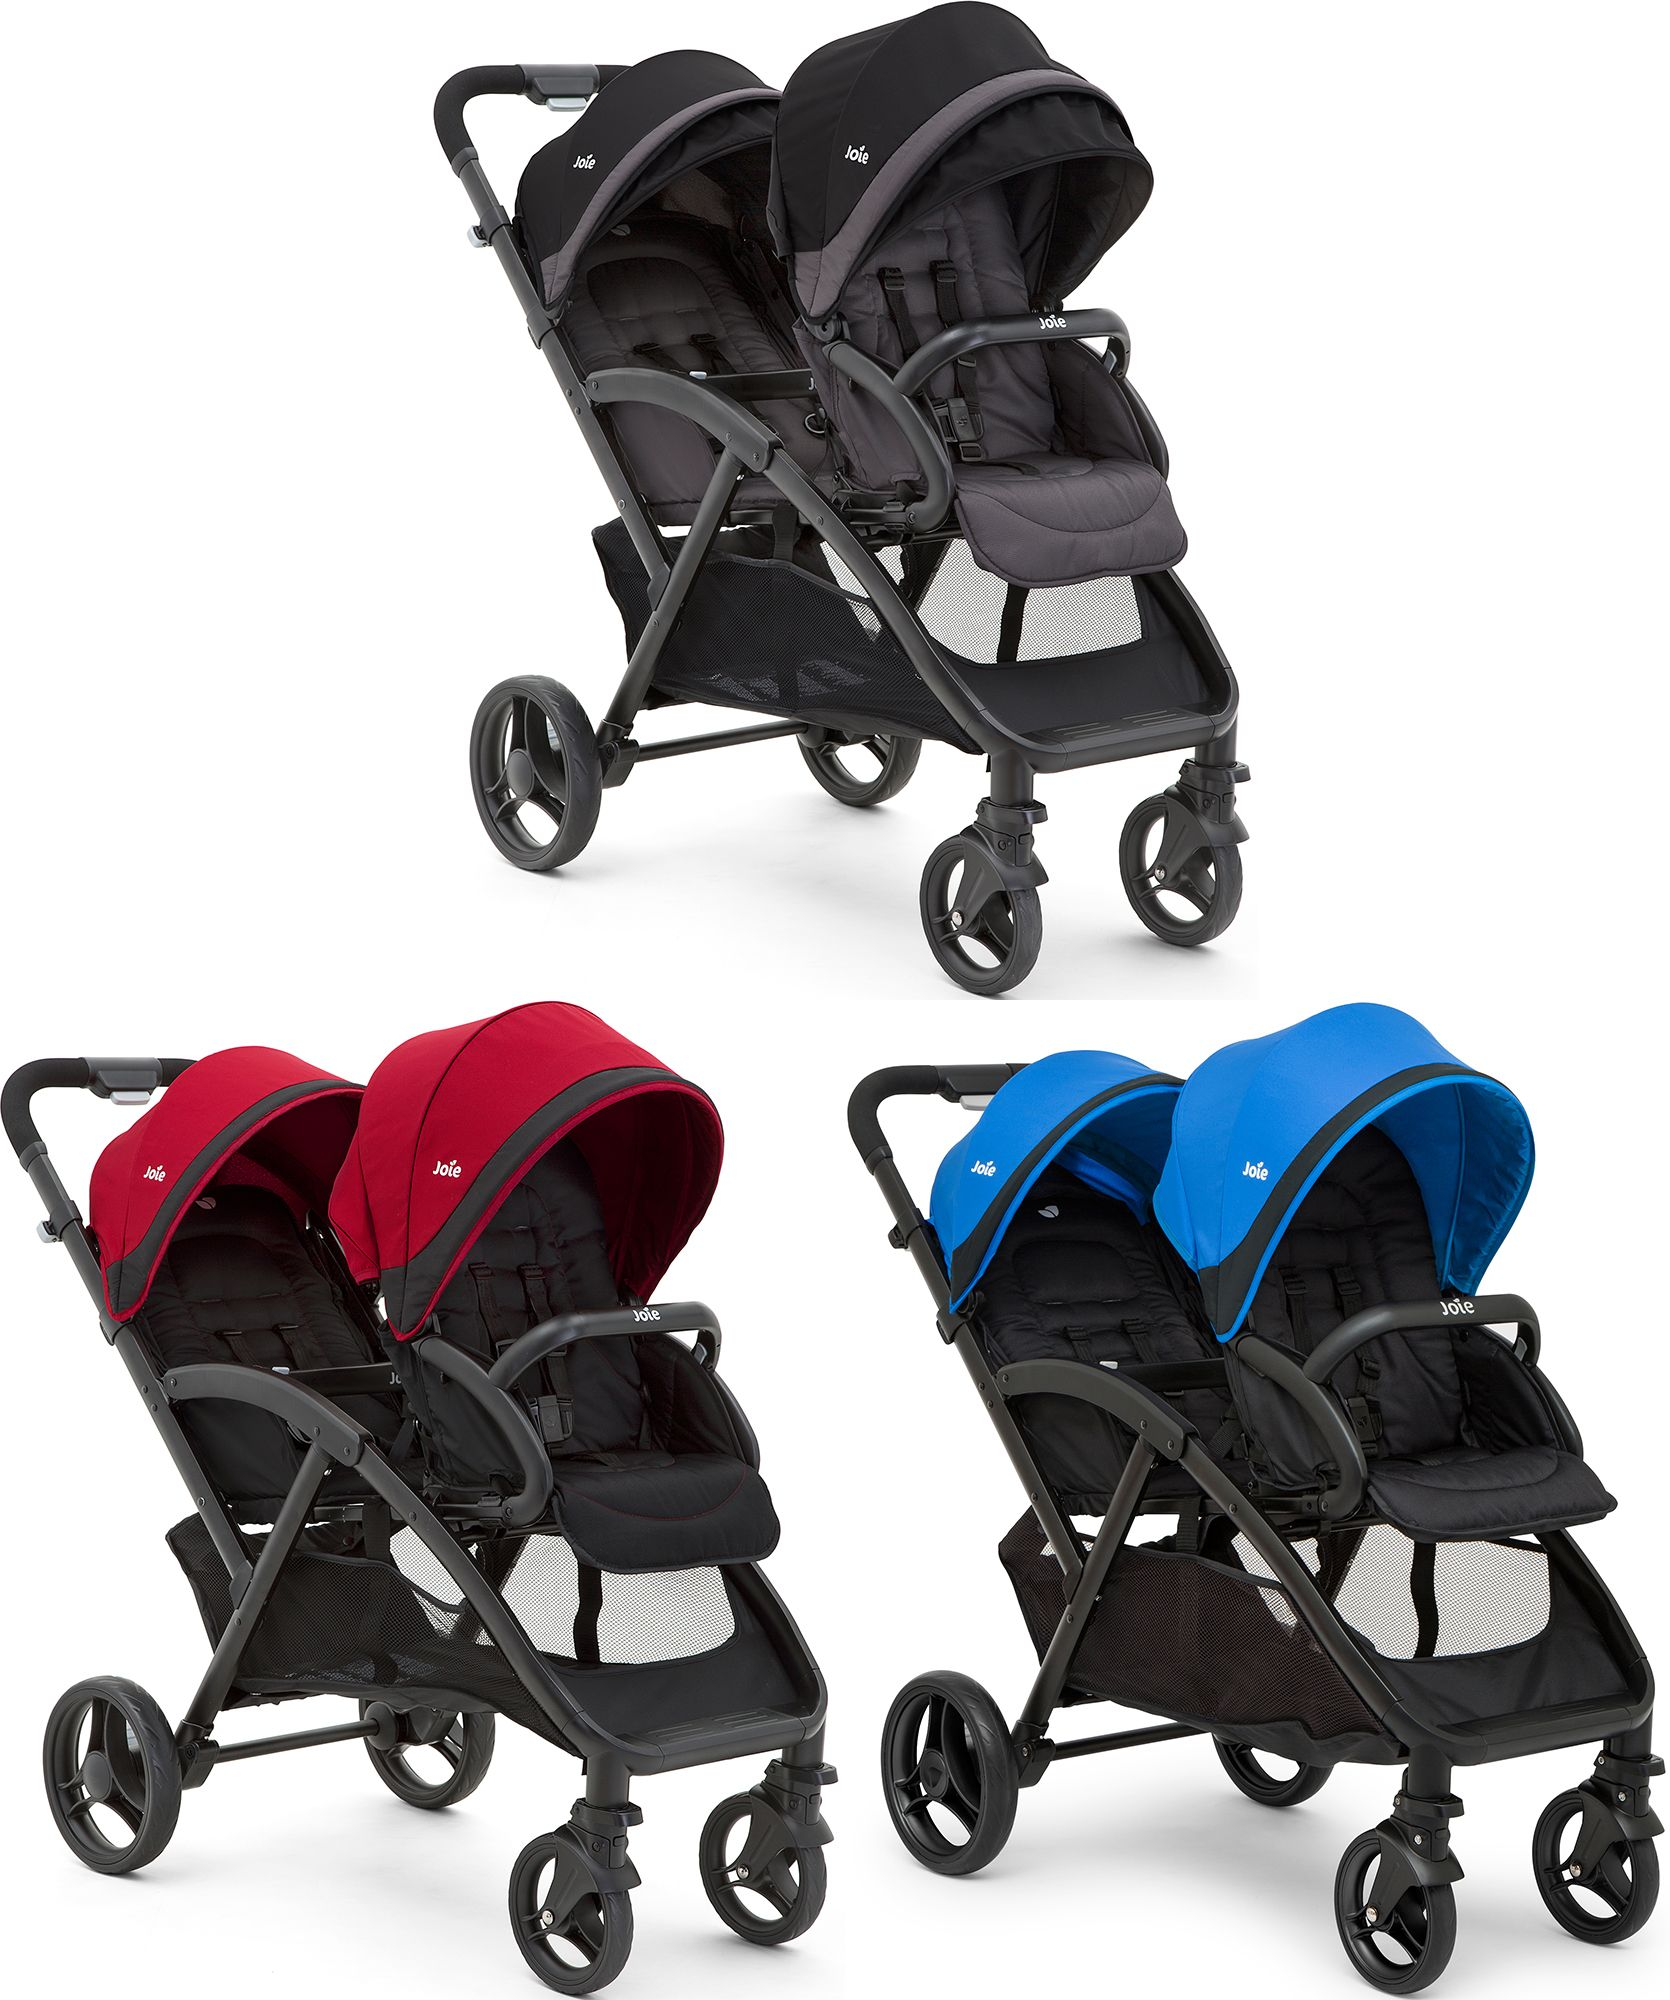 joie evalite duo twin stroller double buggy pushchair baby. Black Bedroom Furniture Sets. Home Design Ideas